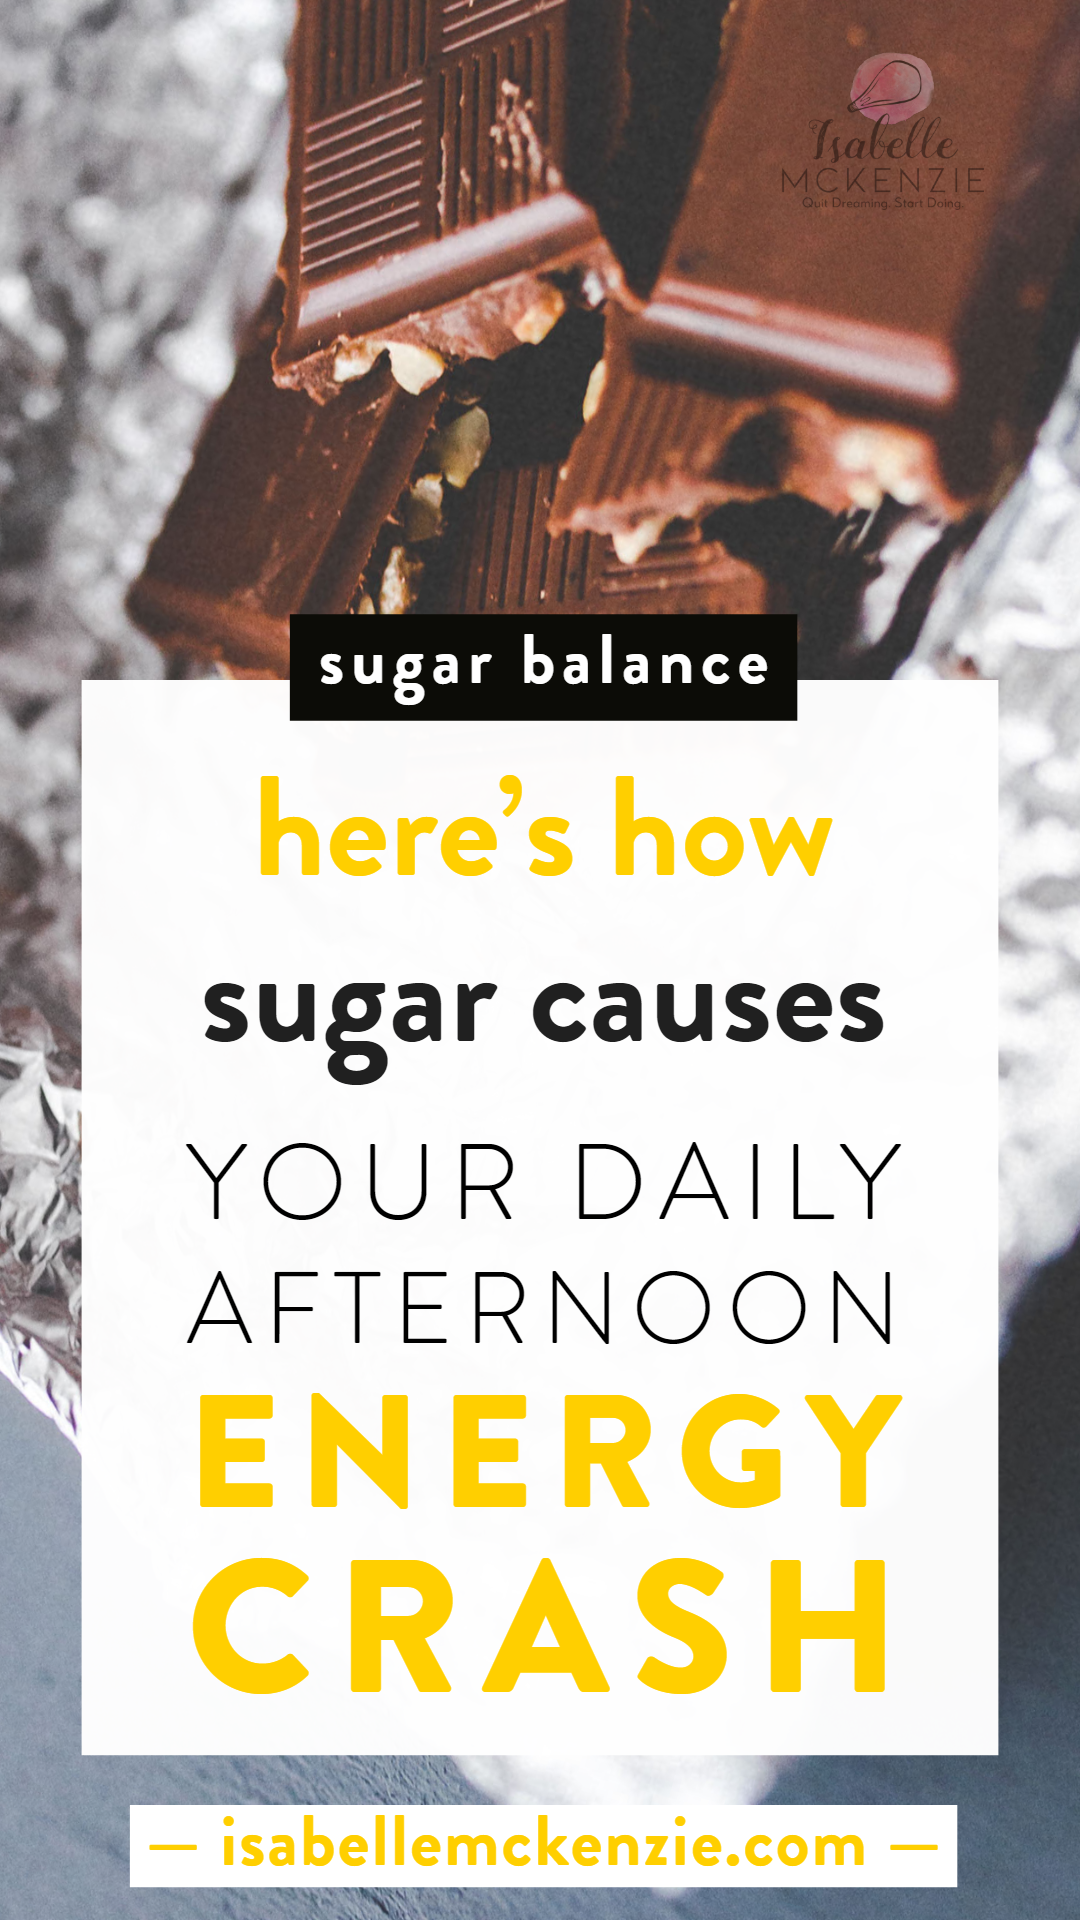 Here's How Sugar Causes Your Daily Afternoon Energy Crash - Isabelle McKenzie